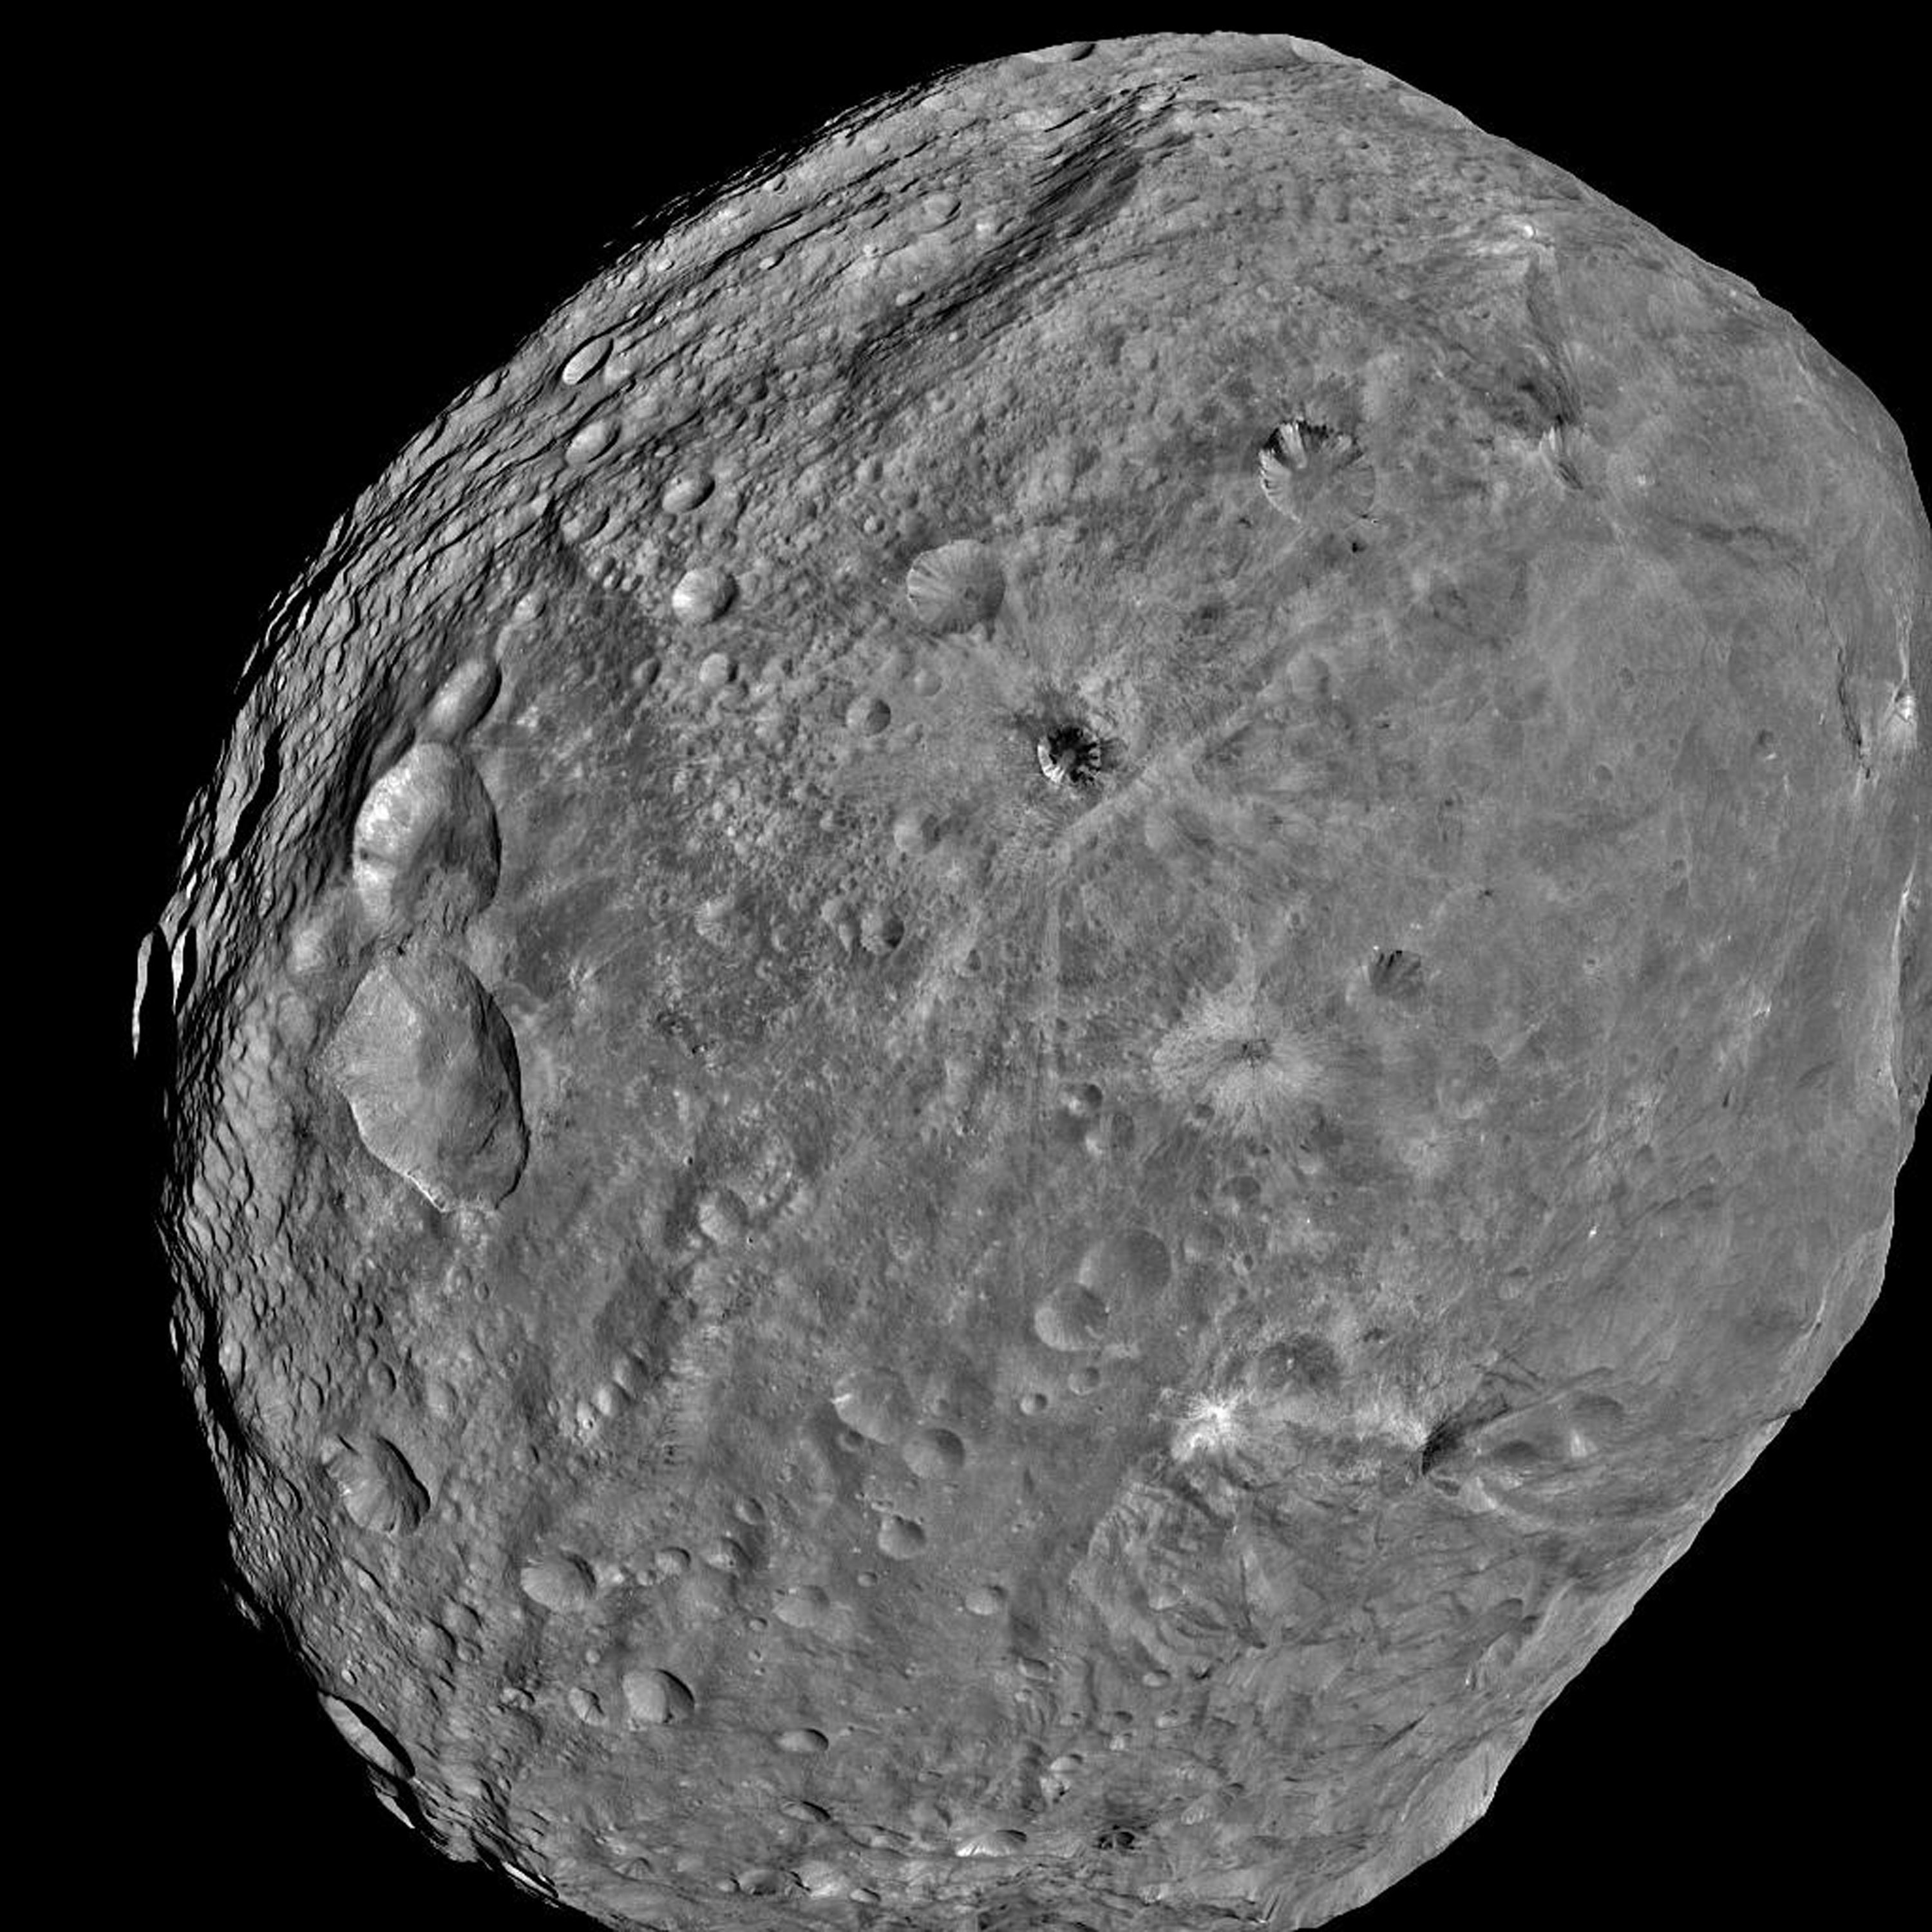 A Newly Discovered Asteroid Just Passed Very Close to